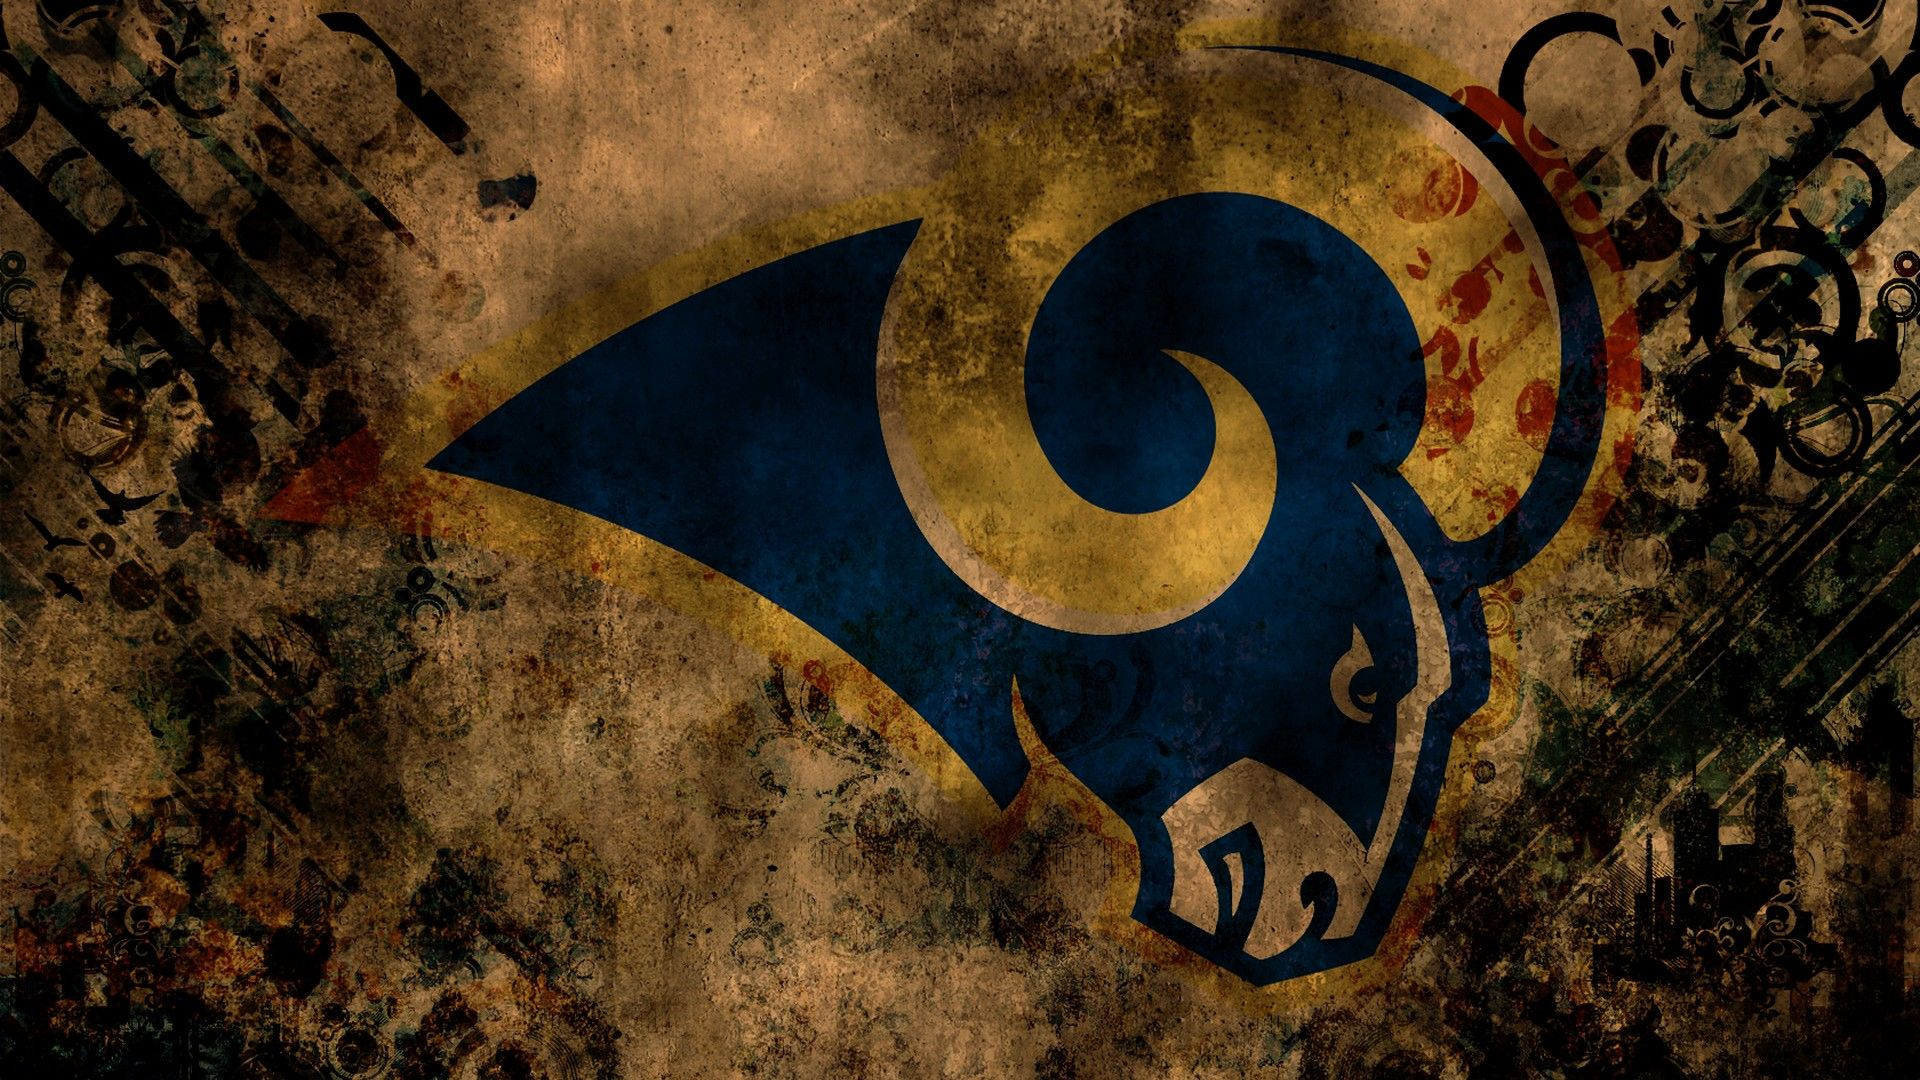 Nfl Wallpapers Best Wallpaper Hd St Louis Rams Wallpaper